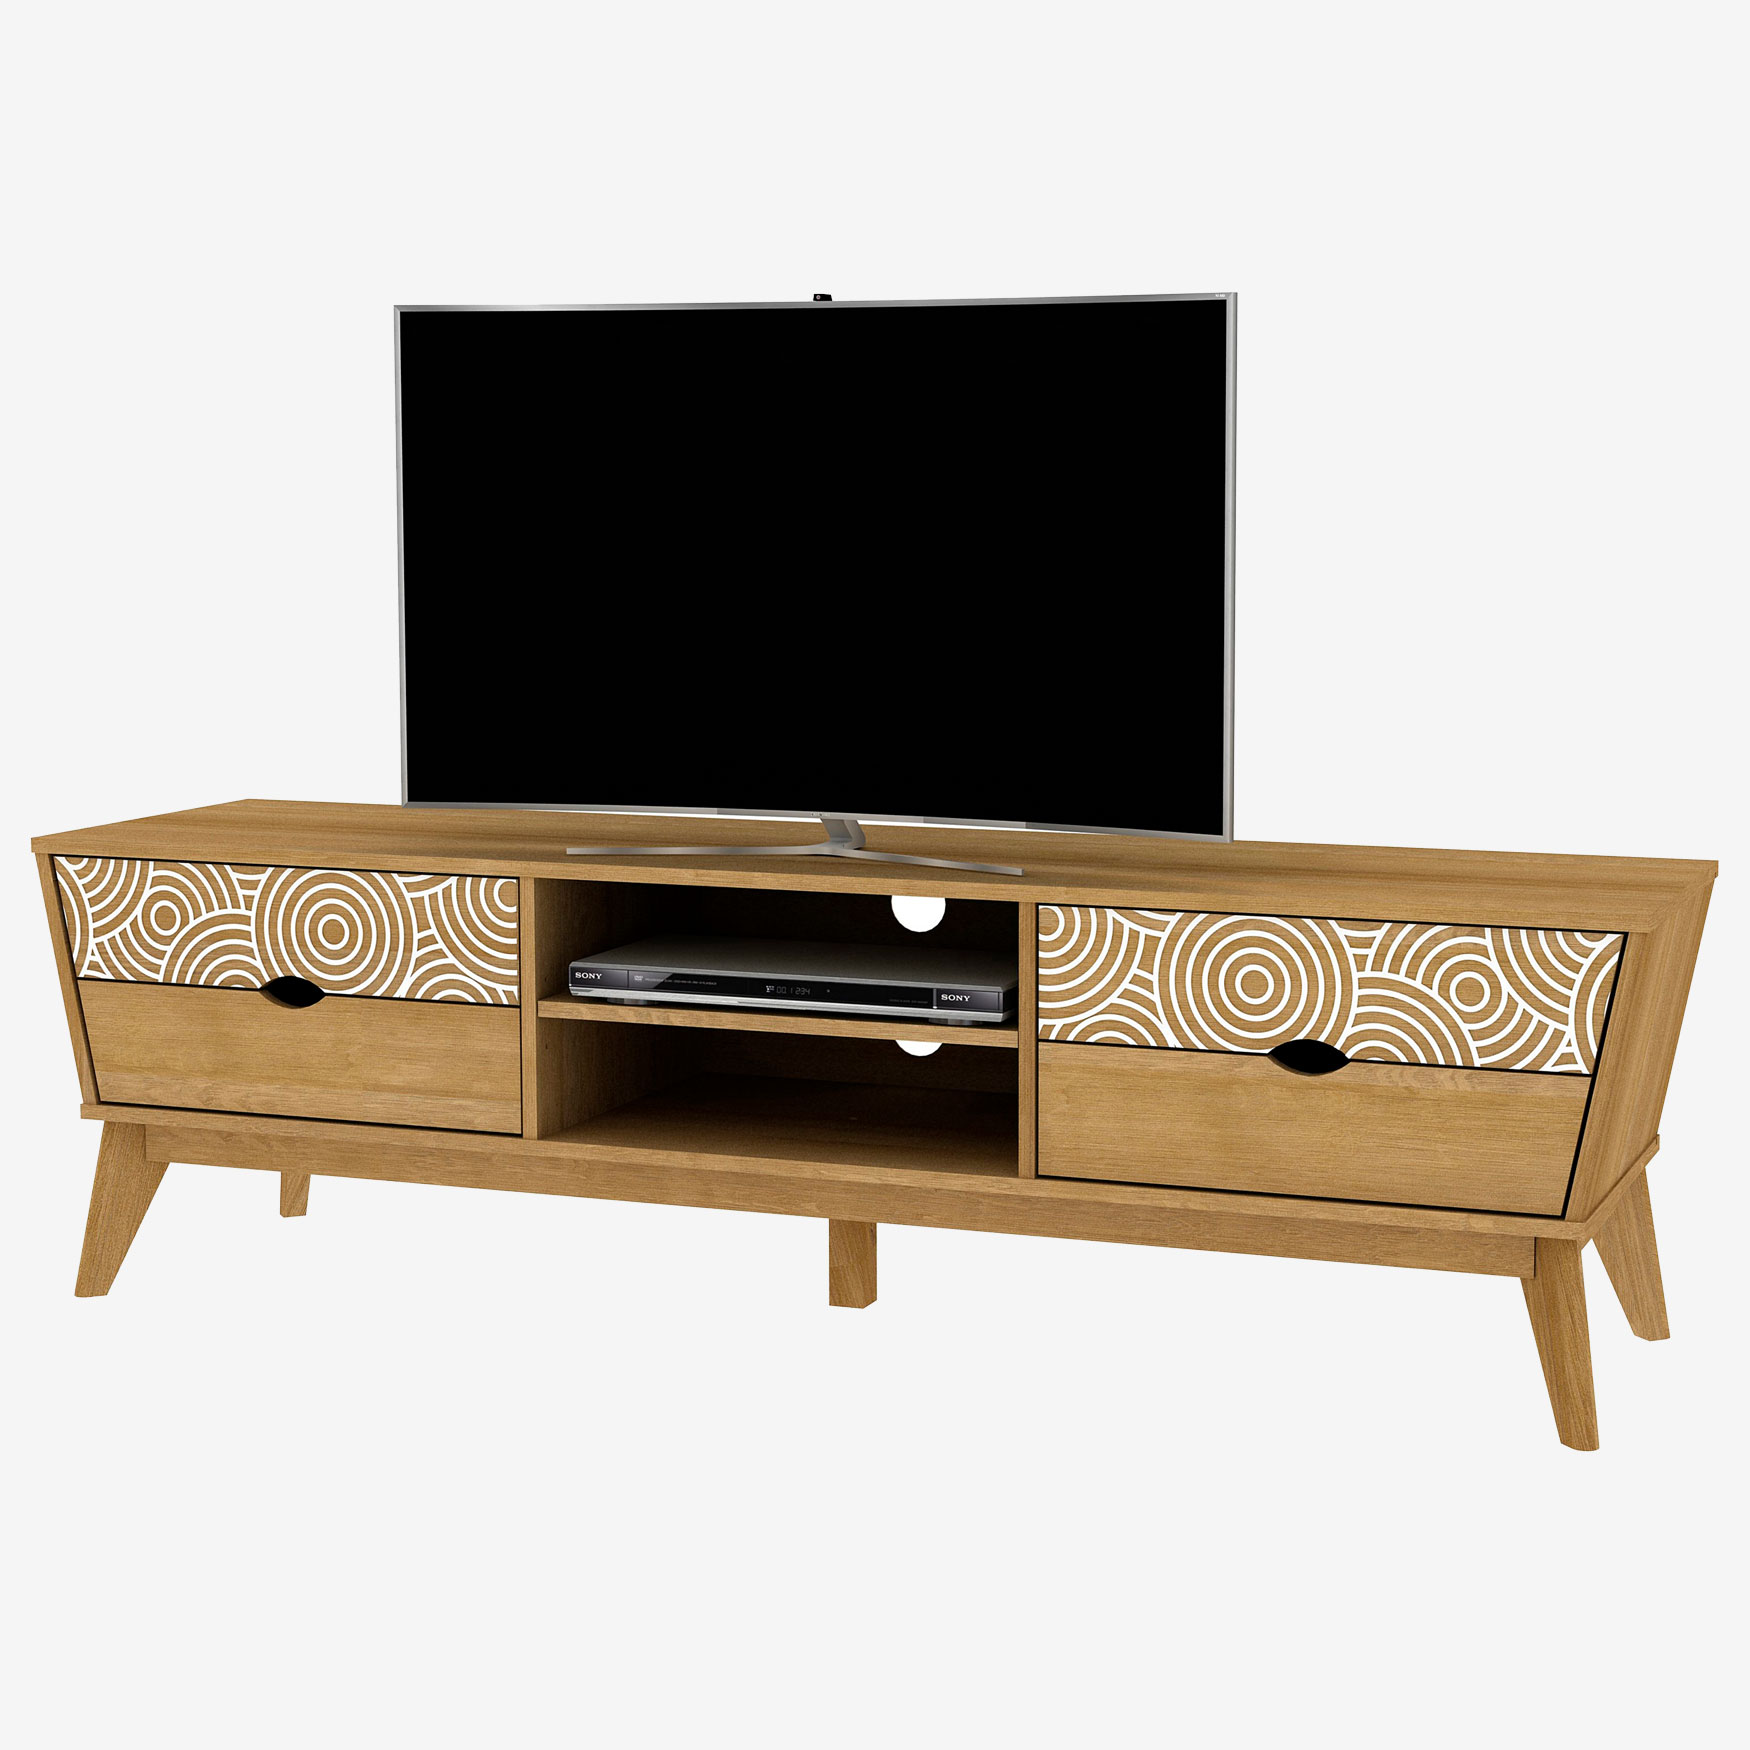 Auckland TV Stand, OAK